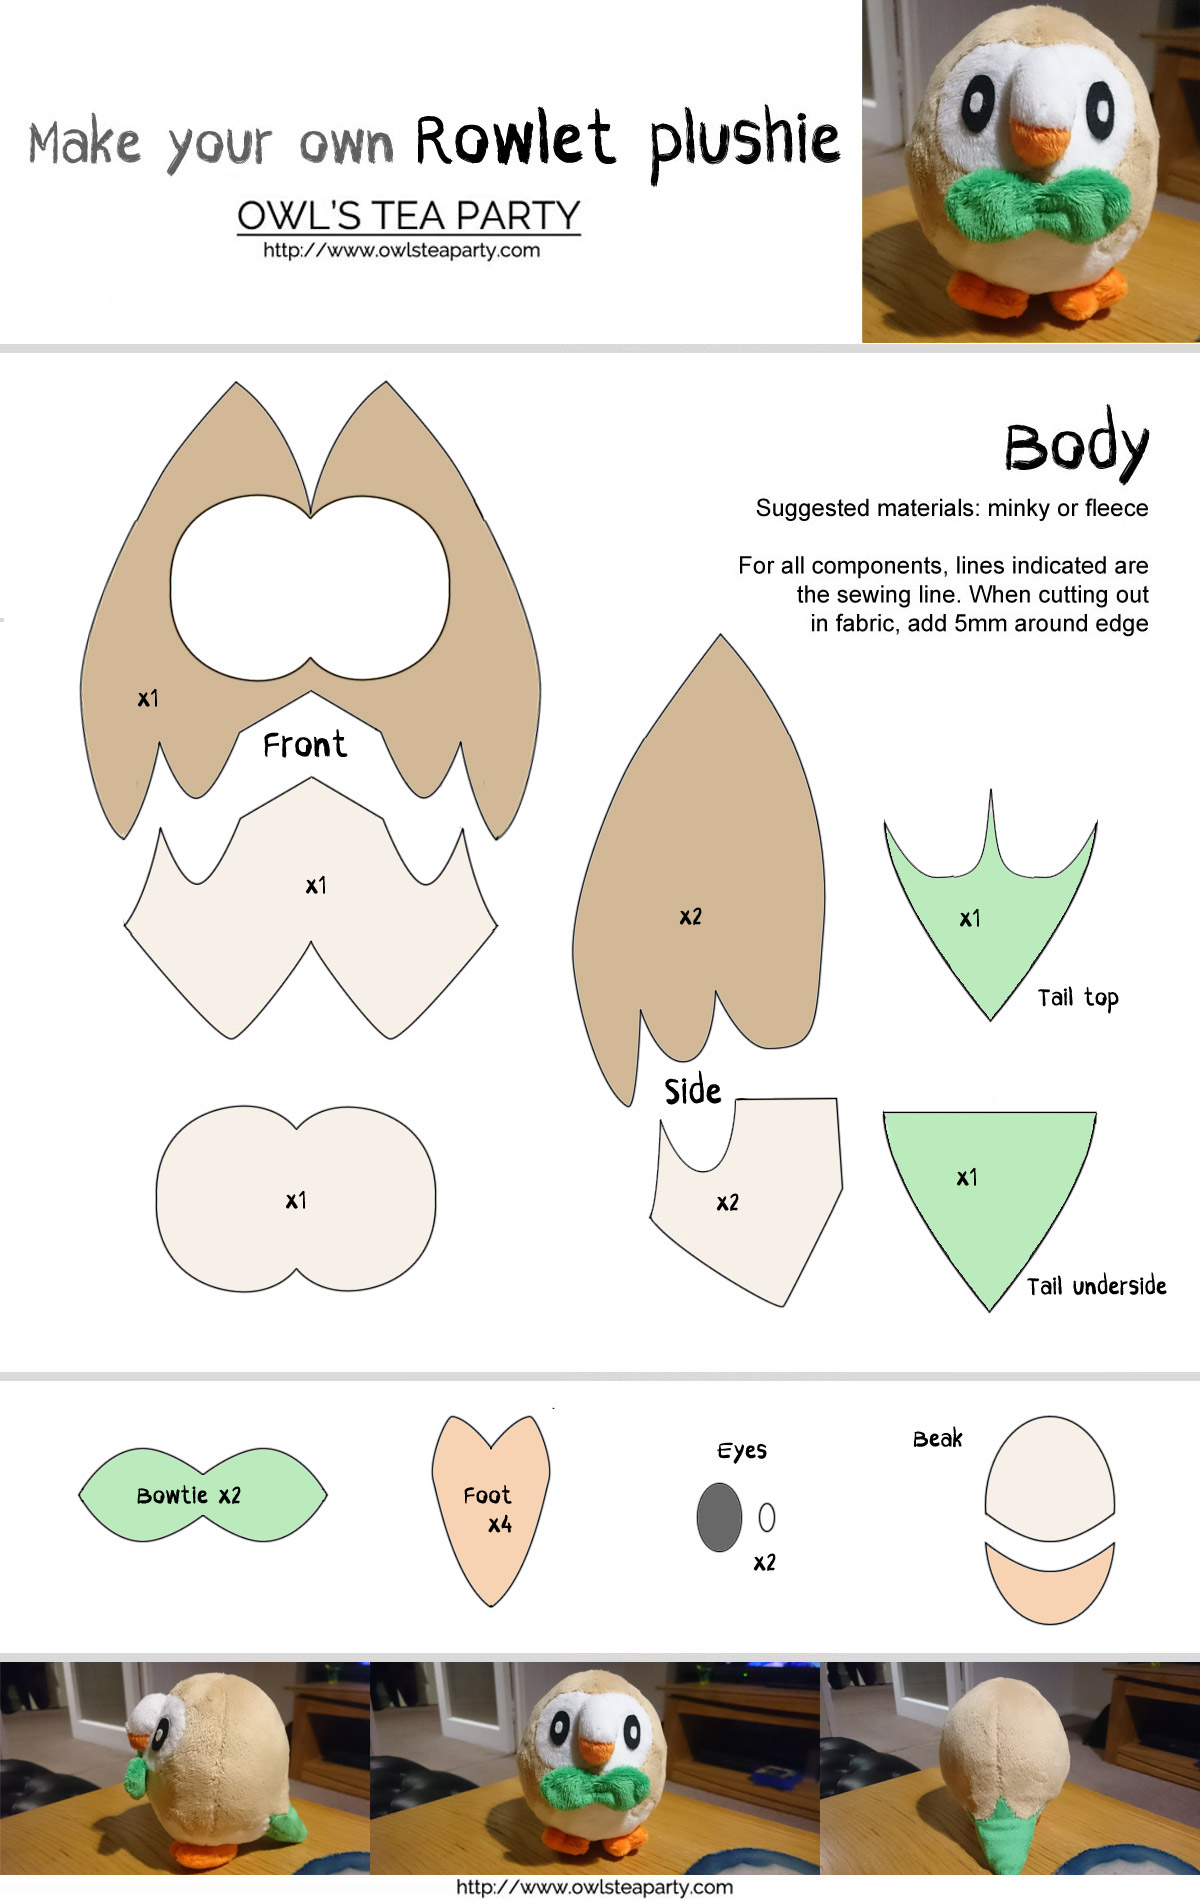 Free Rowlet sewing template